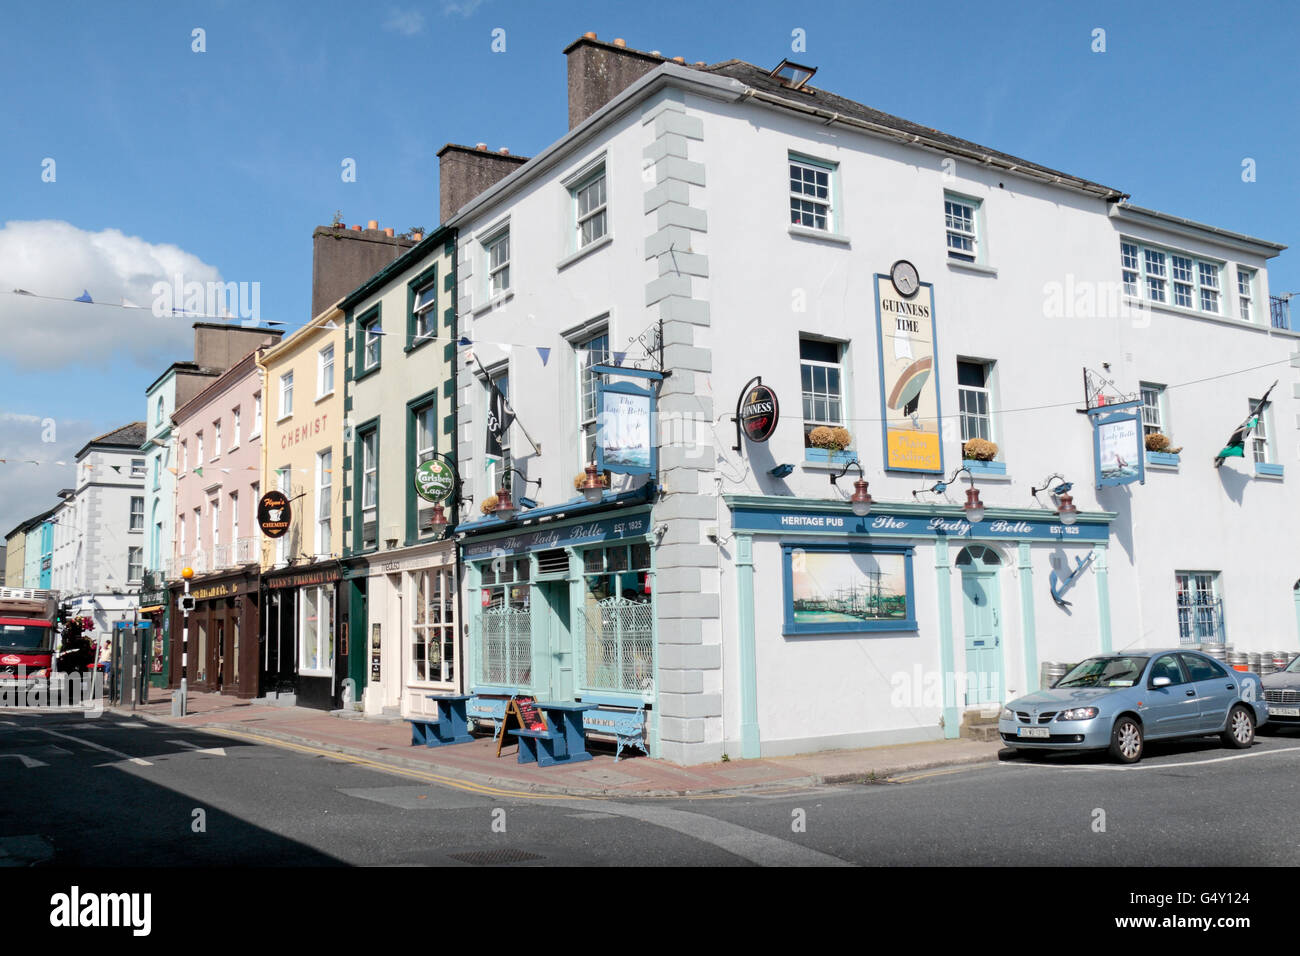 aecc2ca28b144 The Lady Belle heritage public house, Grattan Square, Dungarvan, Co.  Waterford,